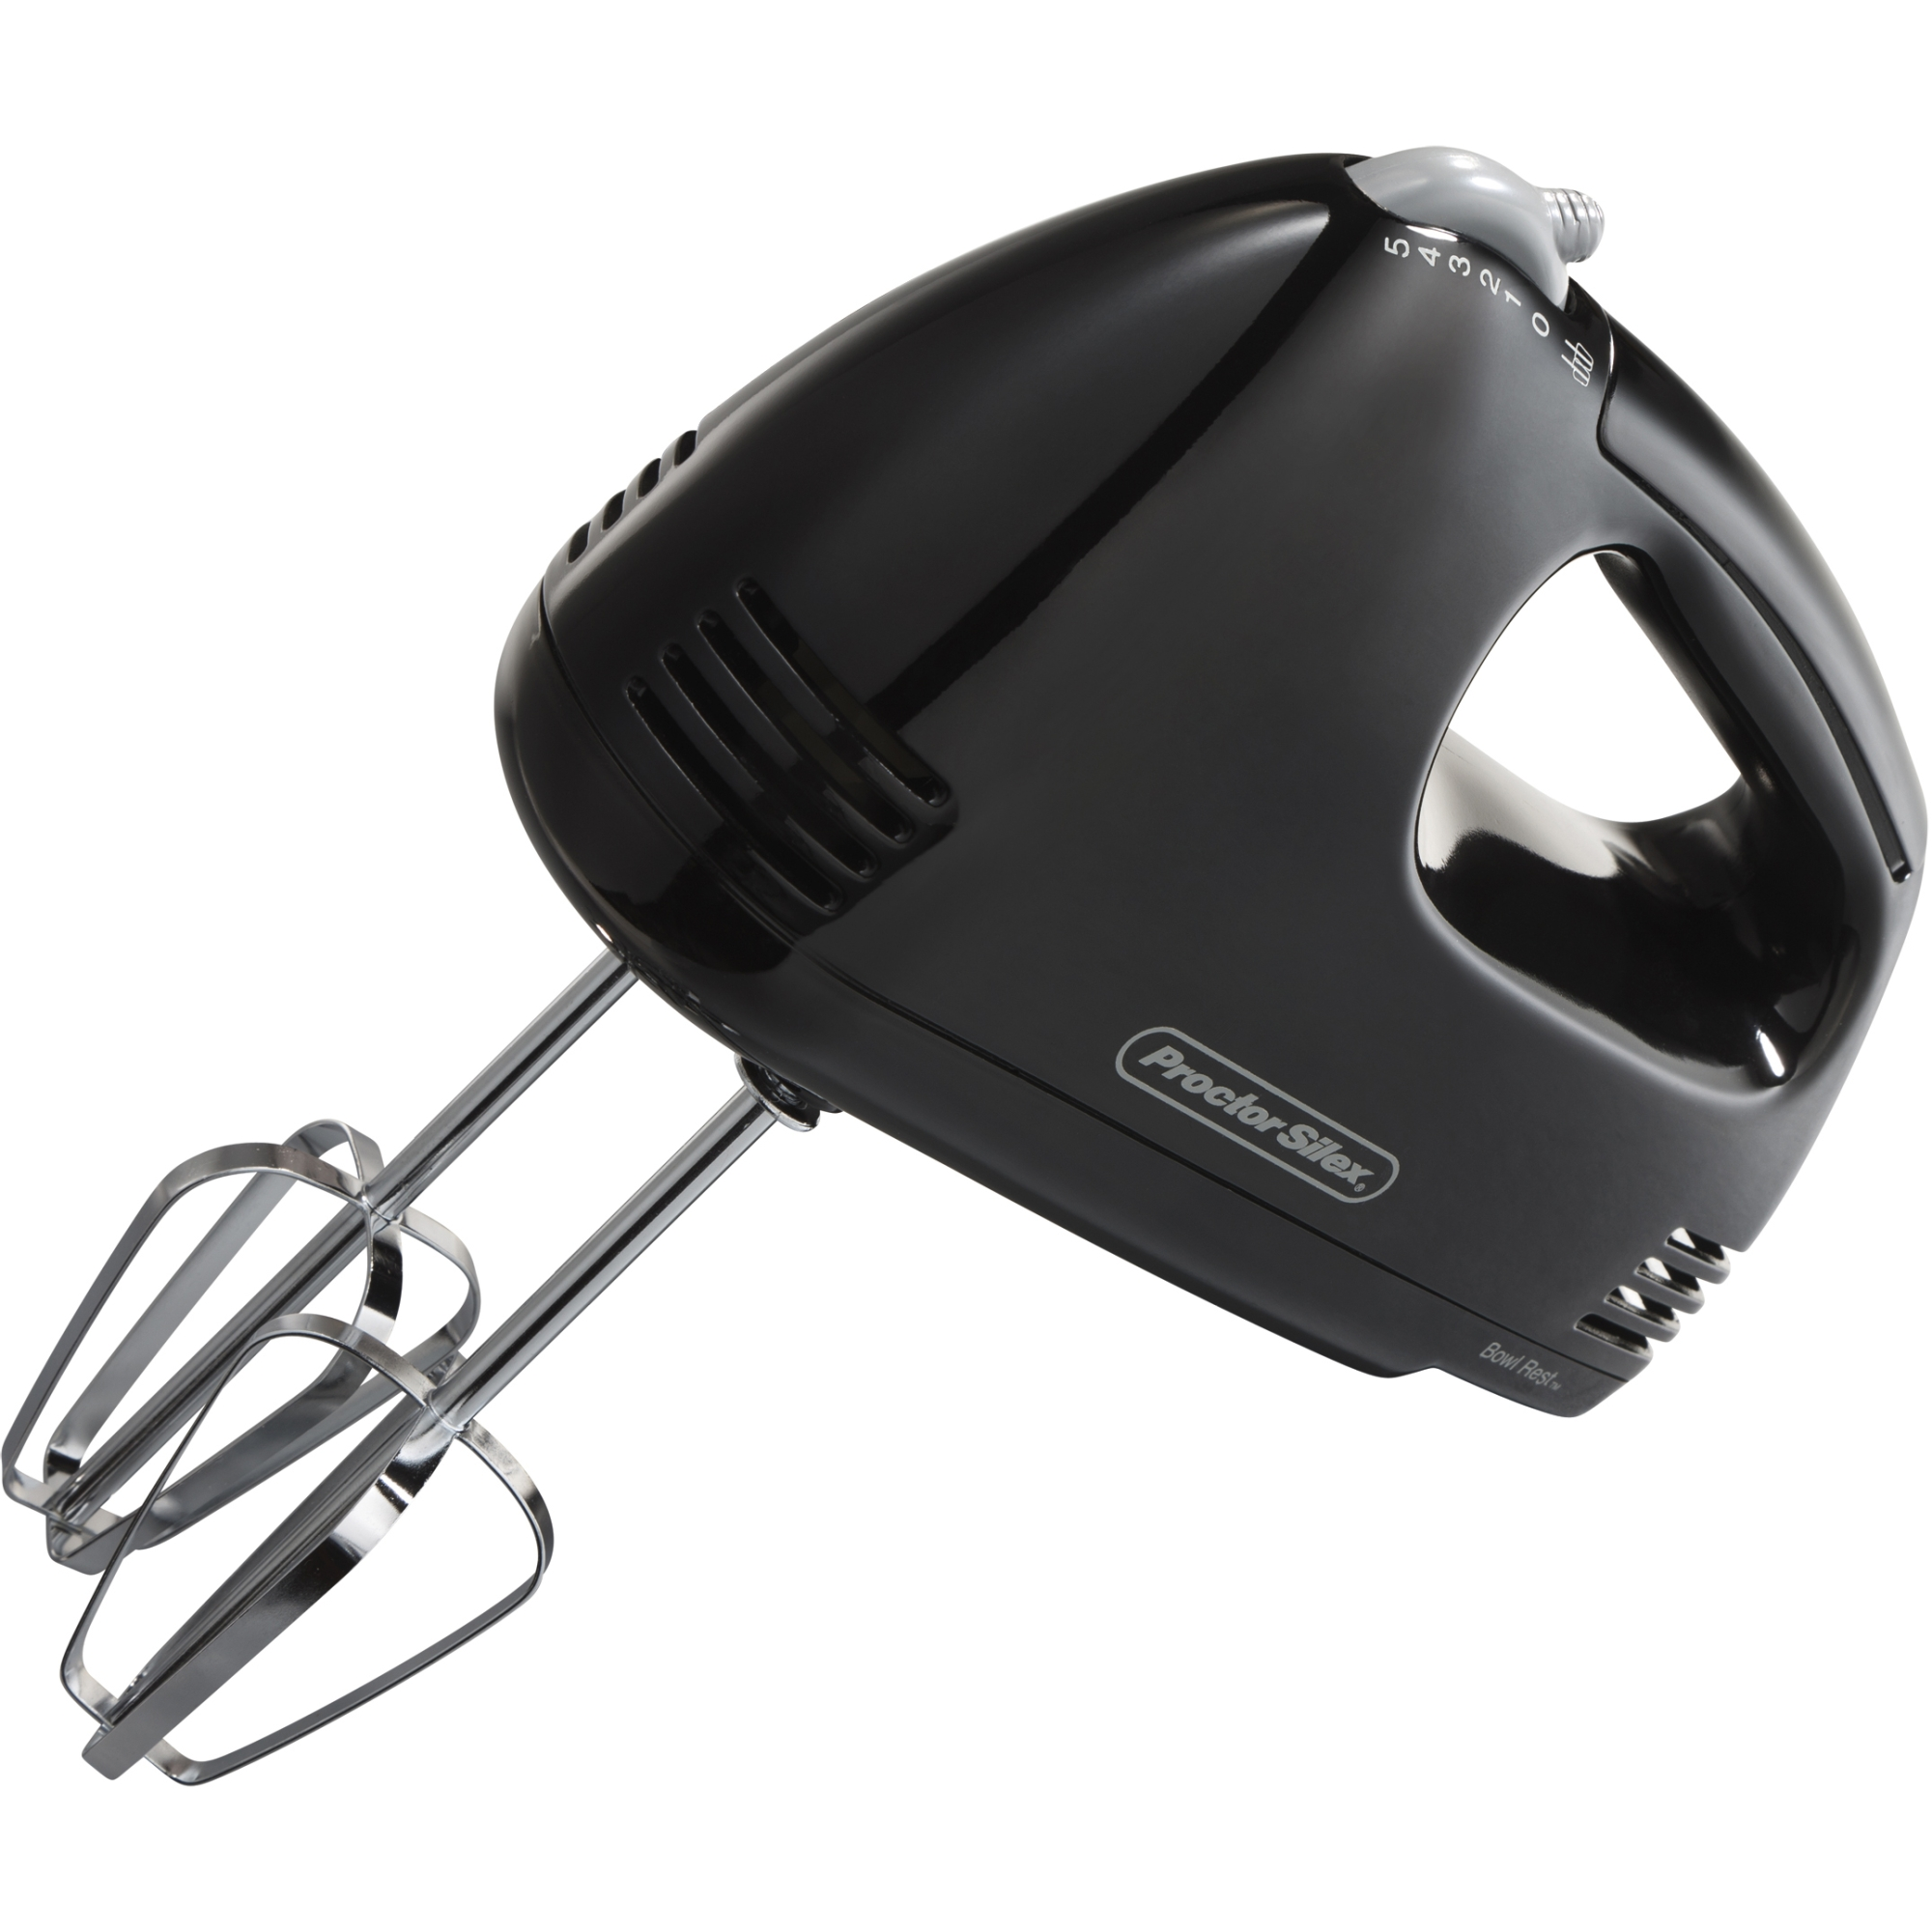 Proctor Silex Easy Hand Mixer | Model# 62507